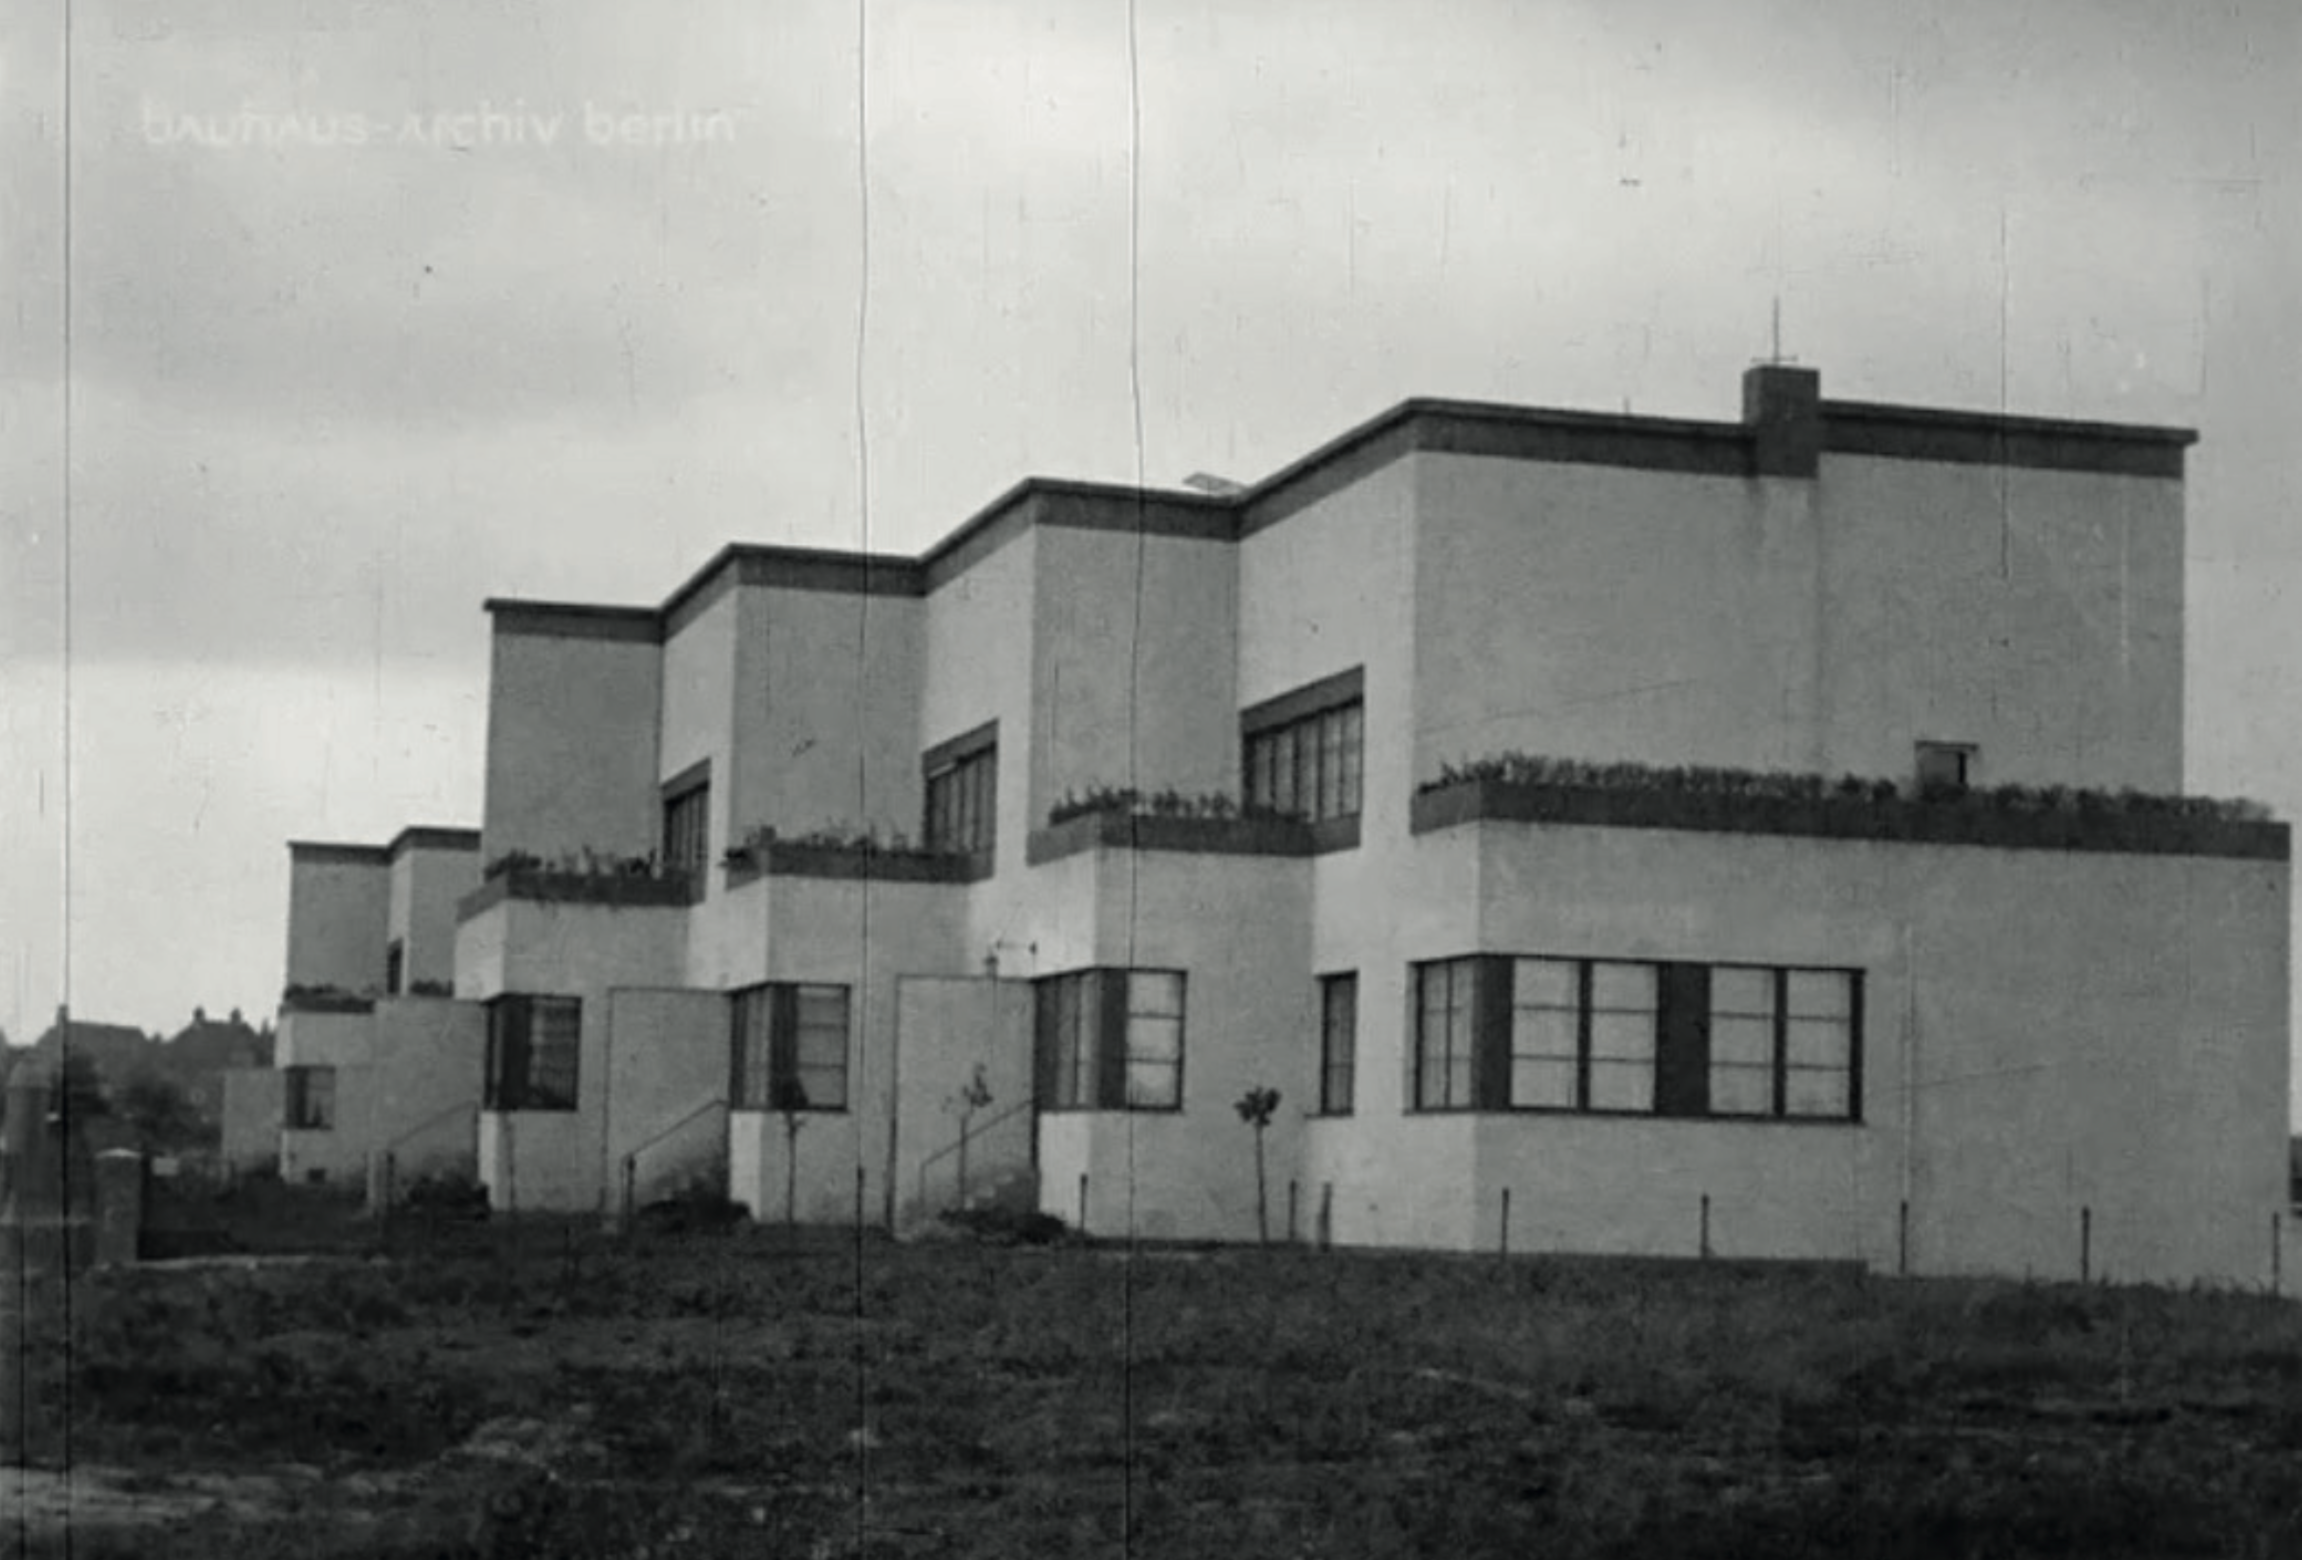 By staggering the house units one can achieve a rhythmical subdivision of the building blocks, and a varied front. Image from: How to live healthily and economically? Film series in four episodes by Walter Gropius and the Humboldt film GMBH, 1926.